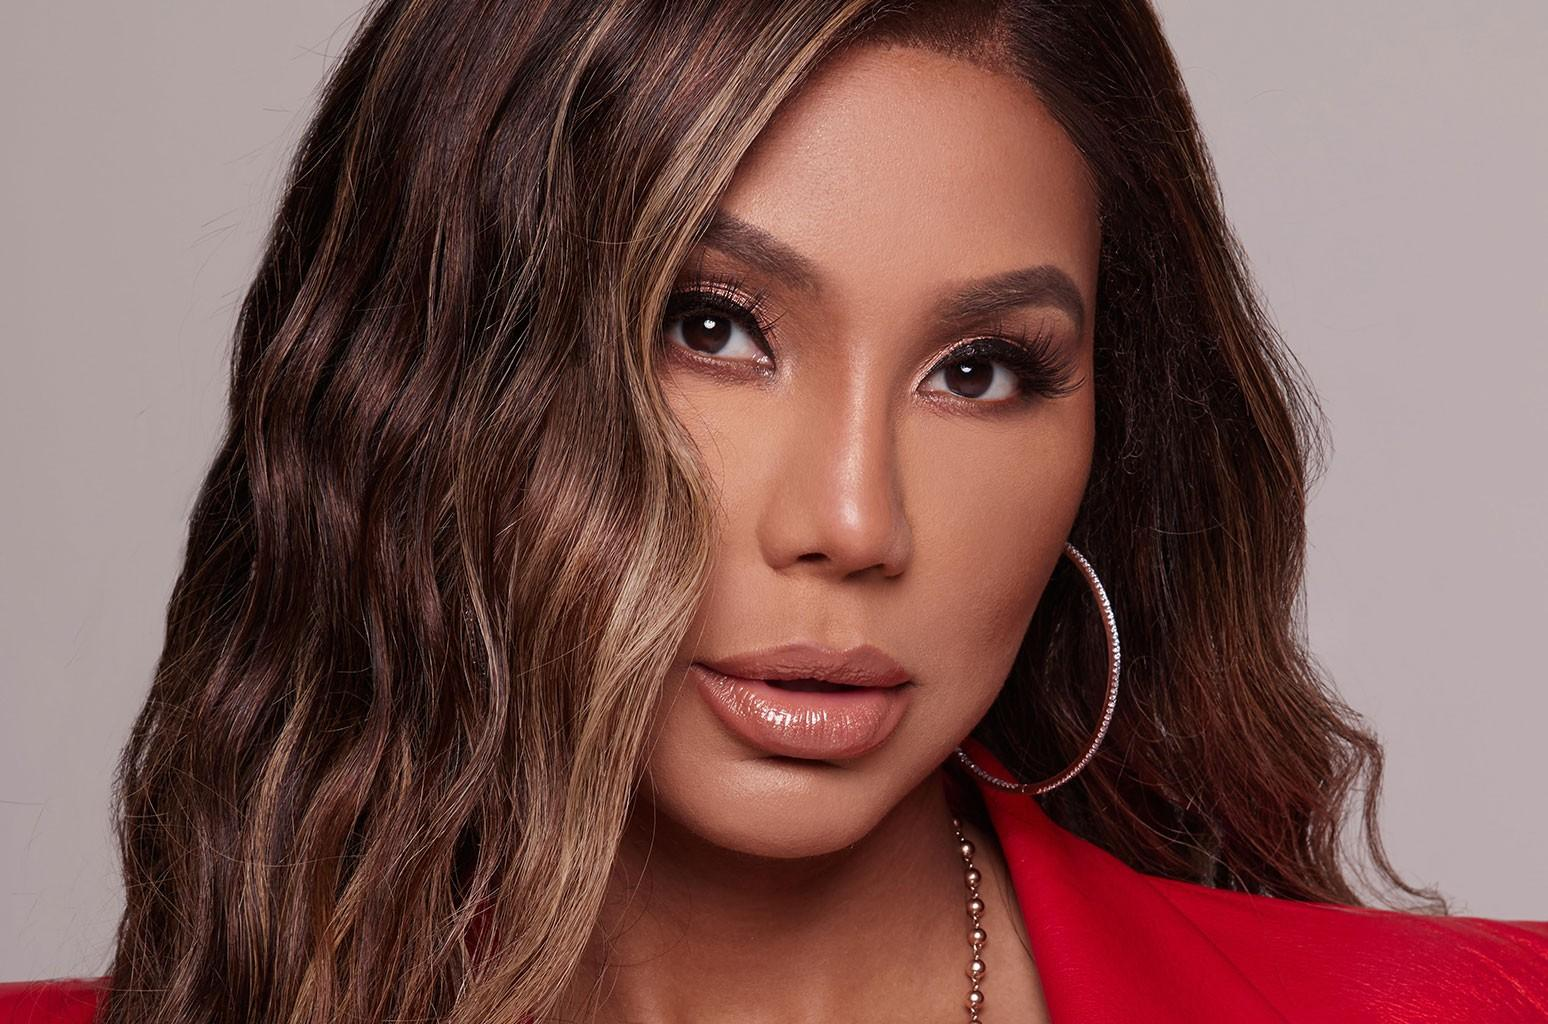 Tamar Braxton Wishes Diezel Braxton A Happy Anniversary - Check Out Her Post